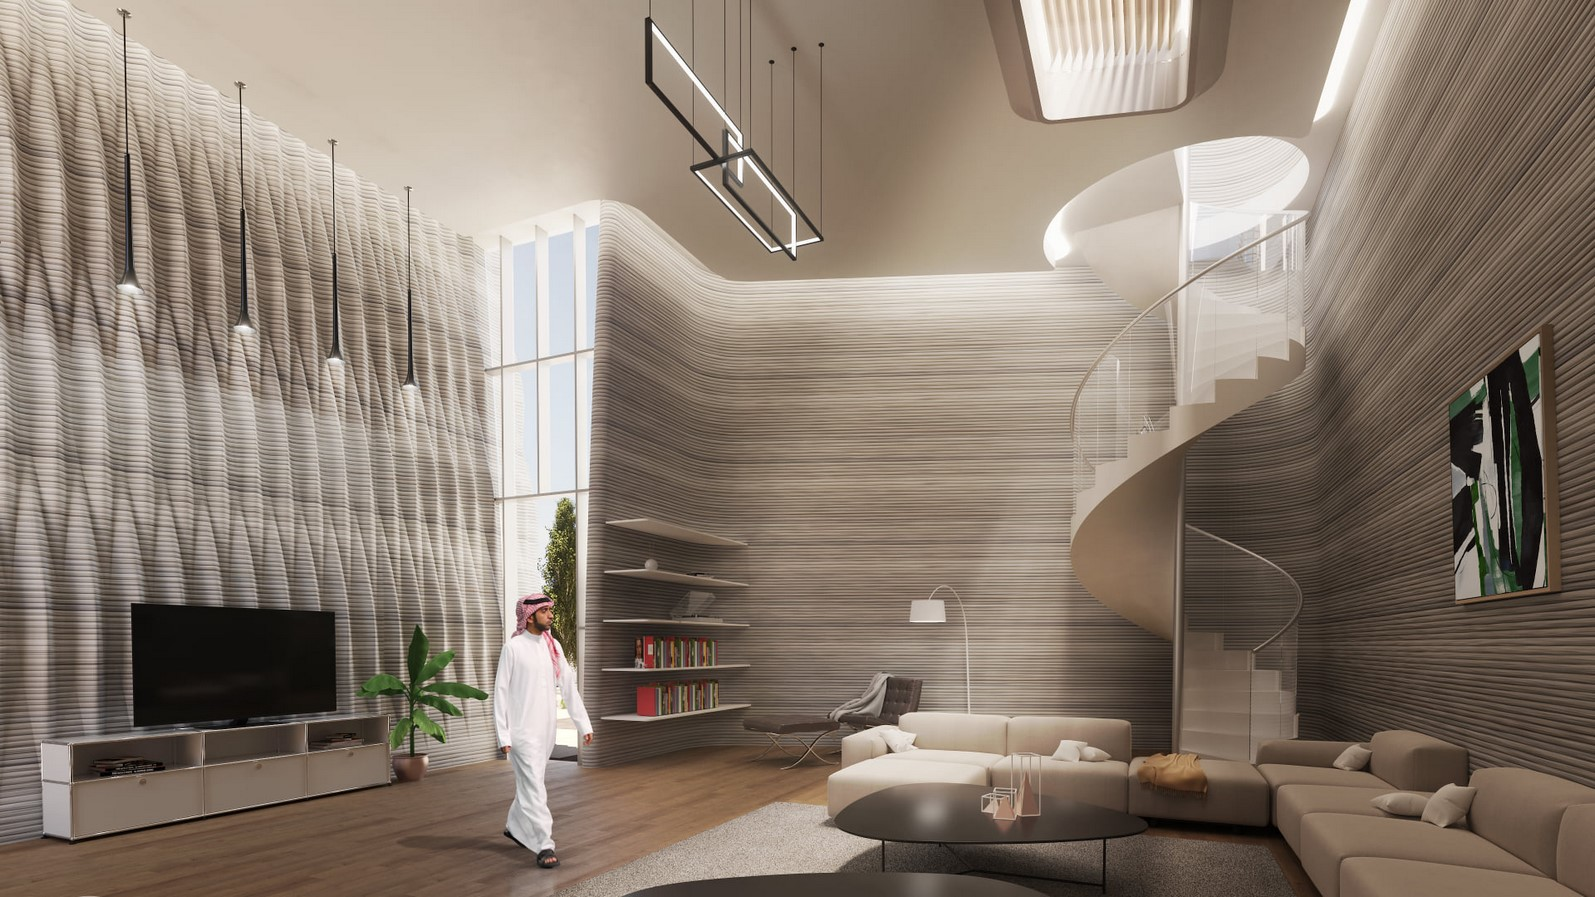 Modular 3D-Printed Majlis House With Smooth Concrete Walls In Abu Dhabi designed by MEAN* - Sheet9